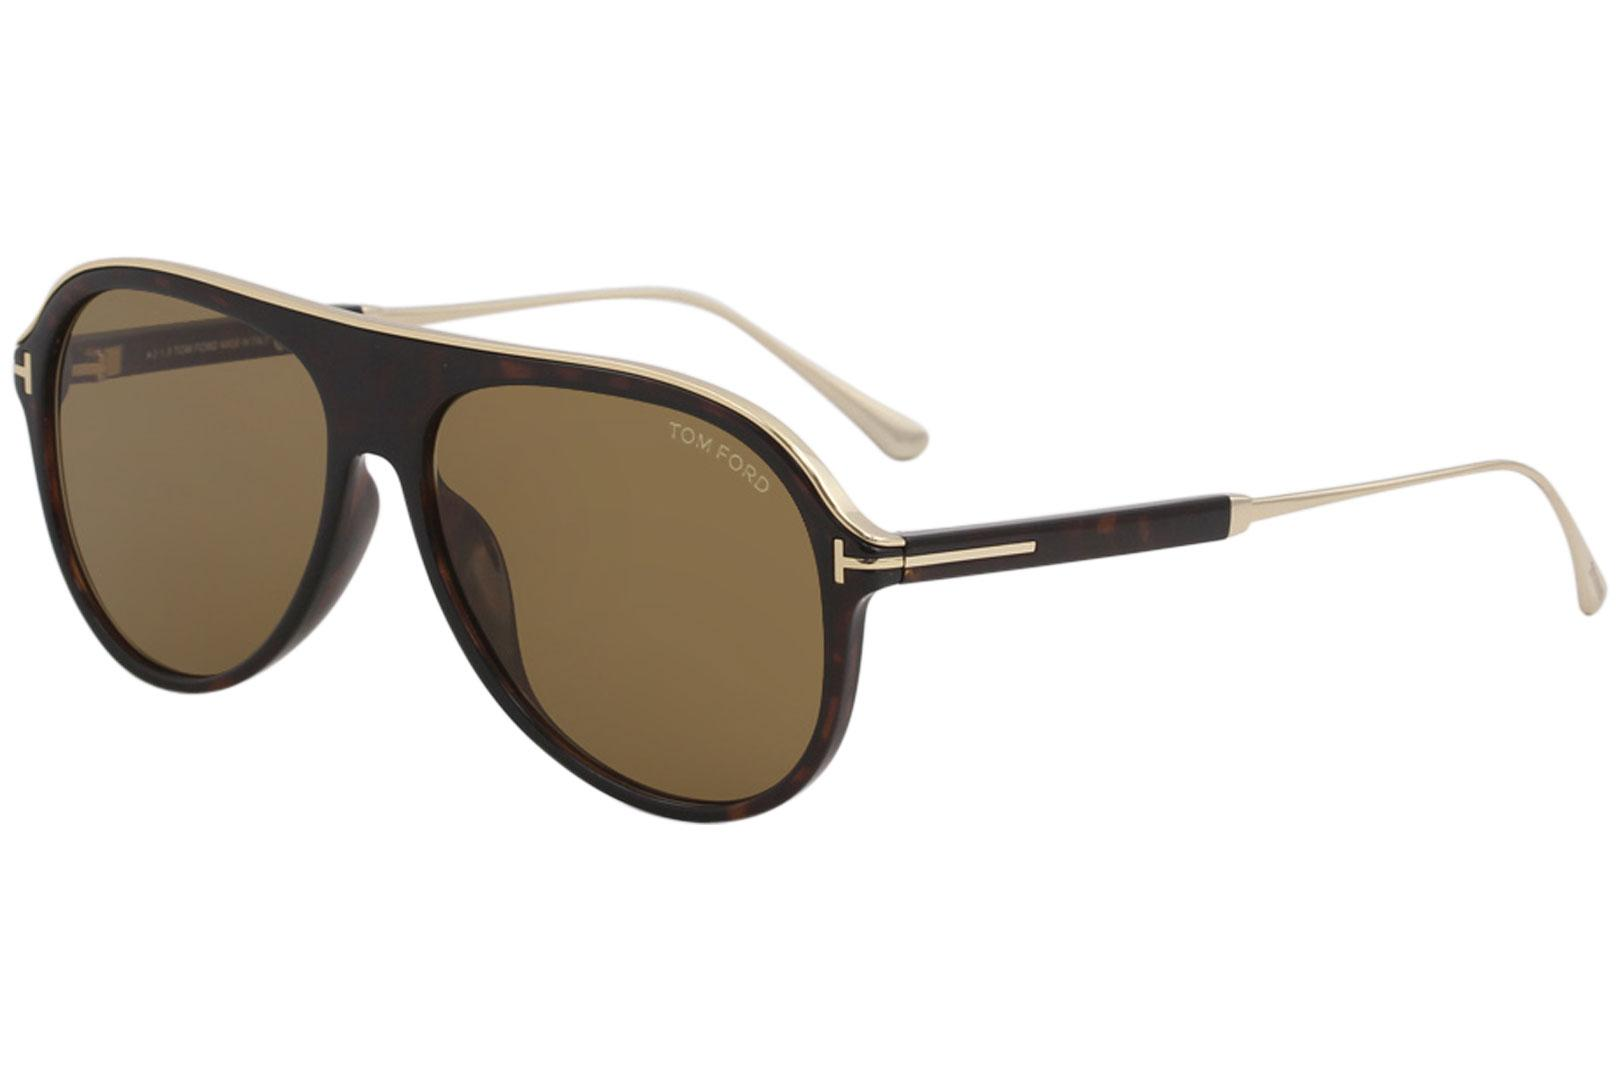 7104573946f Tom Ford Men s Nicholai-02 TF624 TF 624 Fashion Pilot Sunglasses by Tom  Ford. Touch to zoom